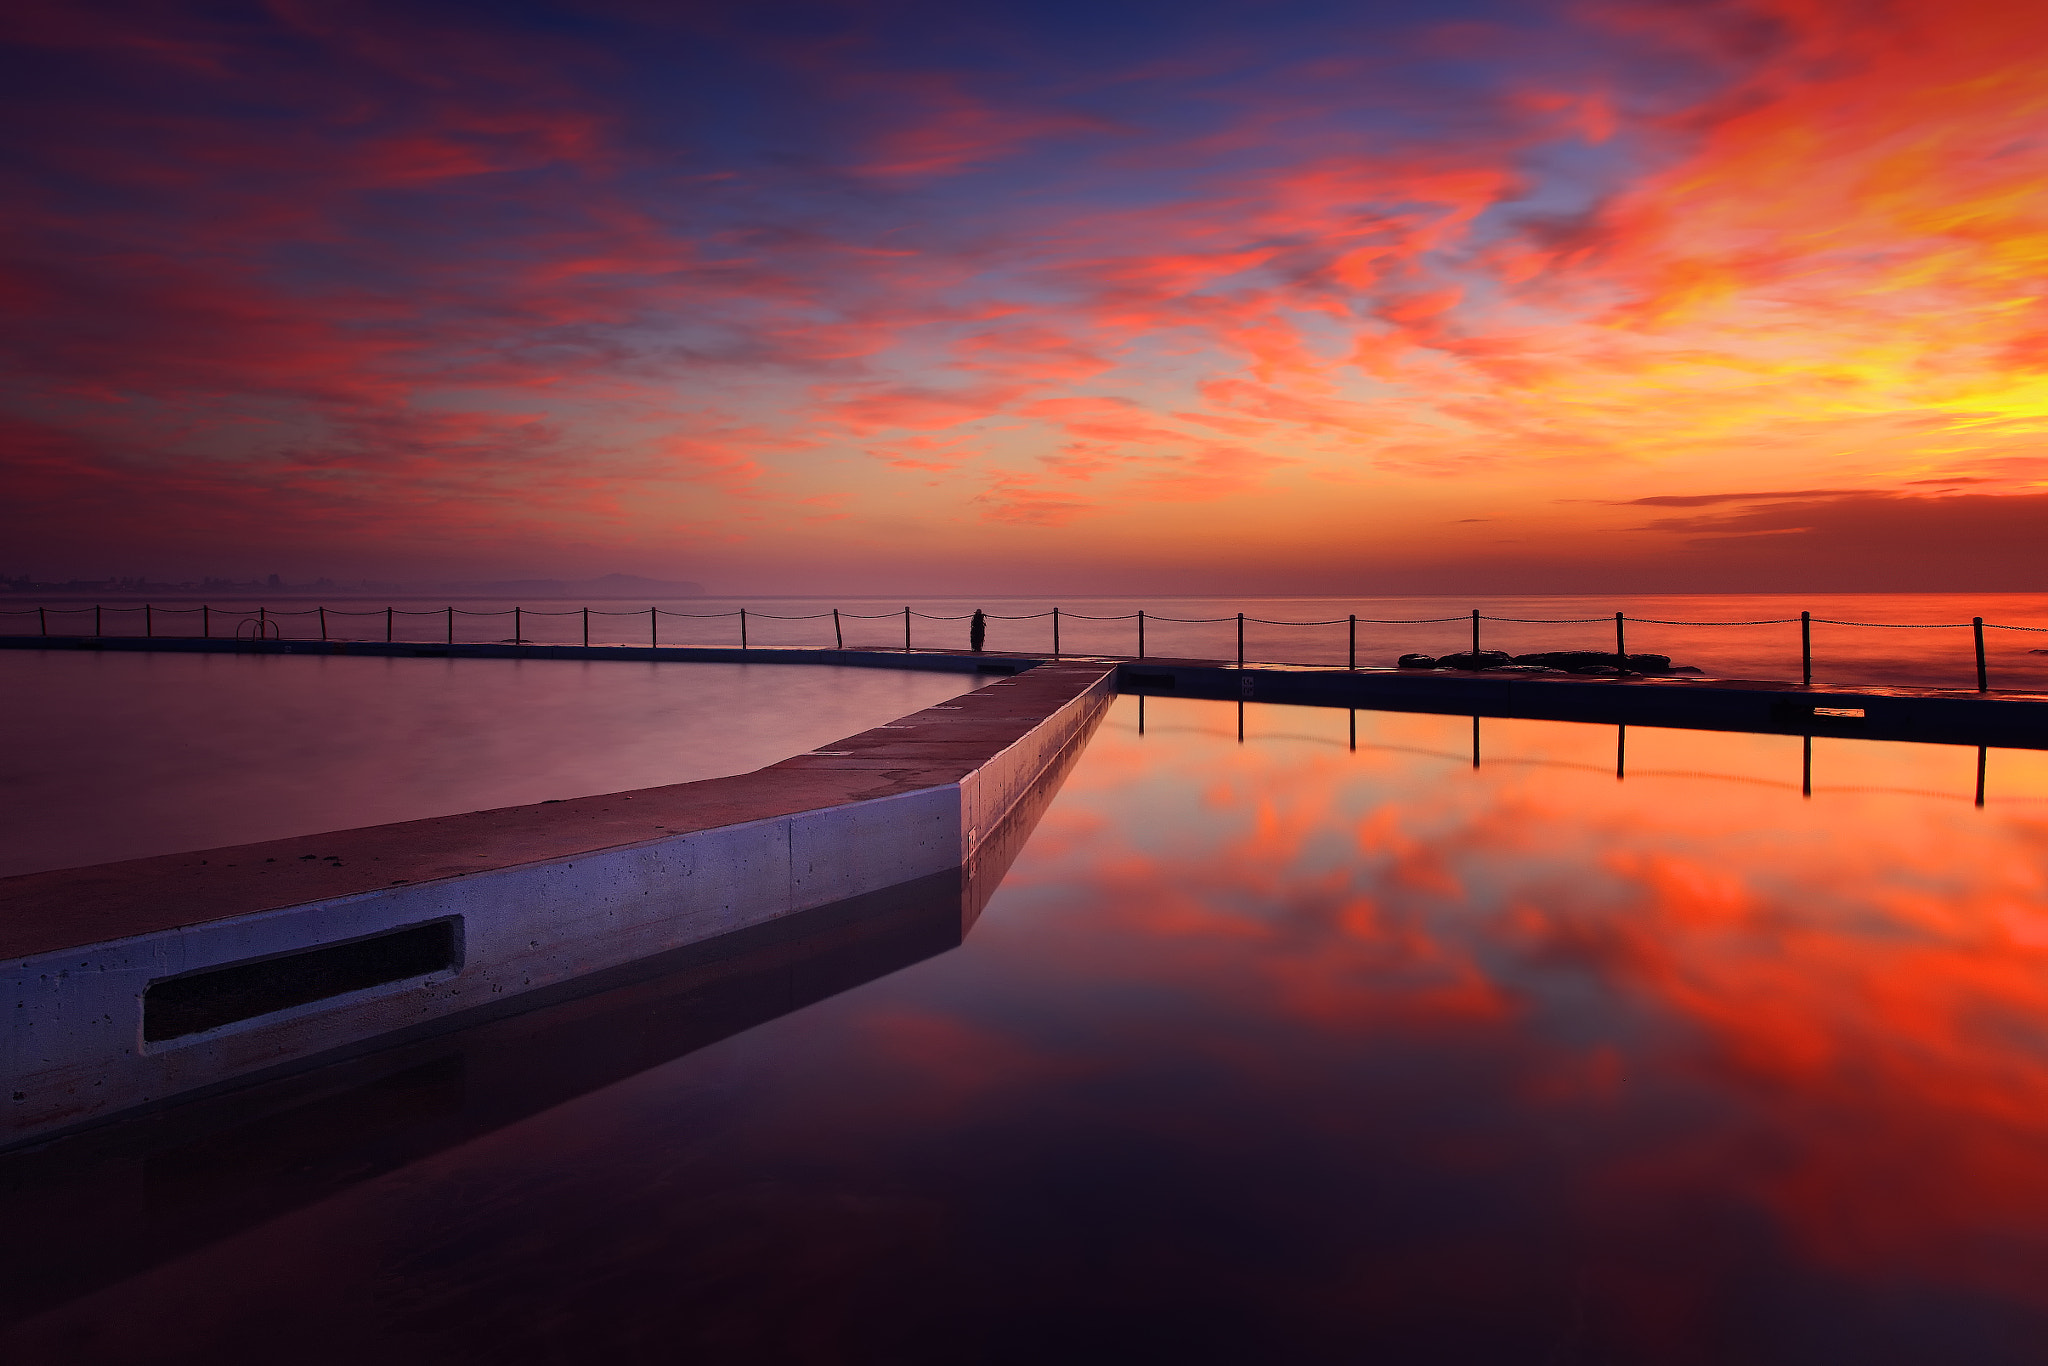 Photograph Collaroy Reflection by Noval Nugraha on 500px